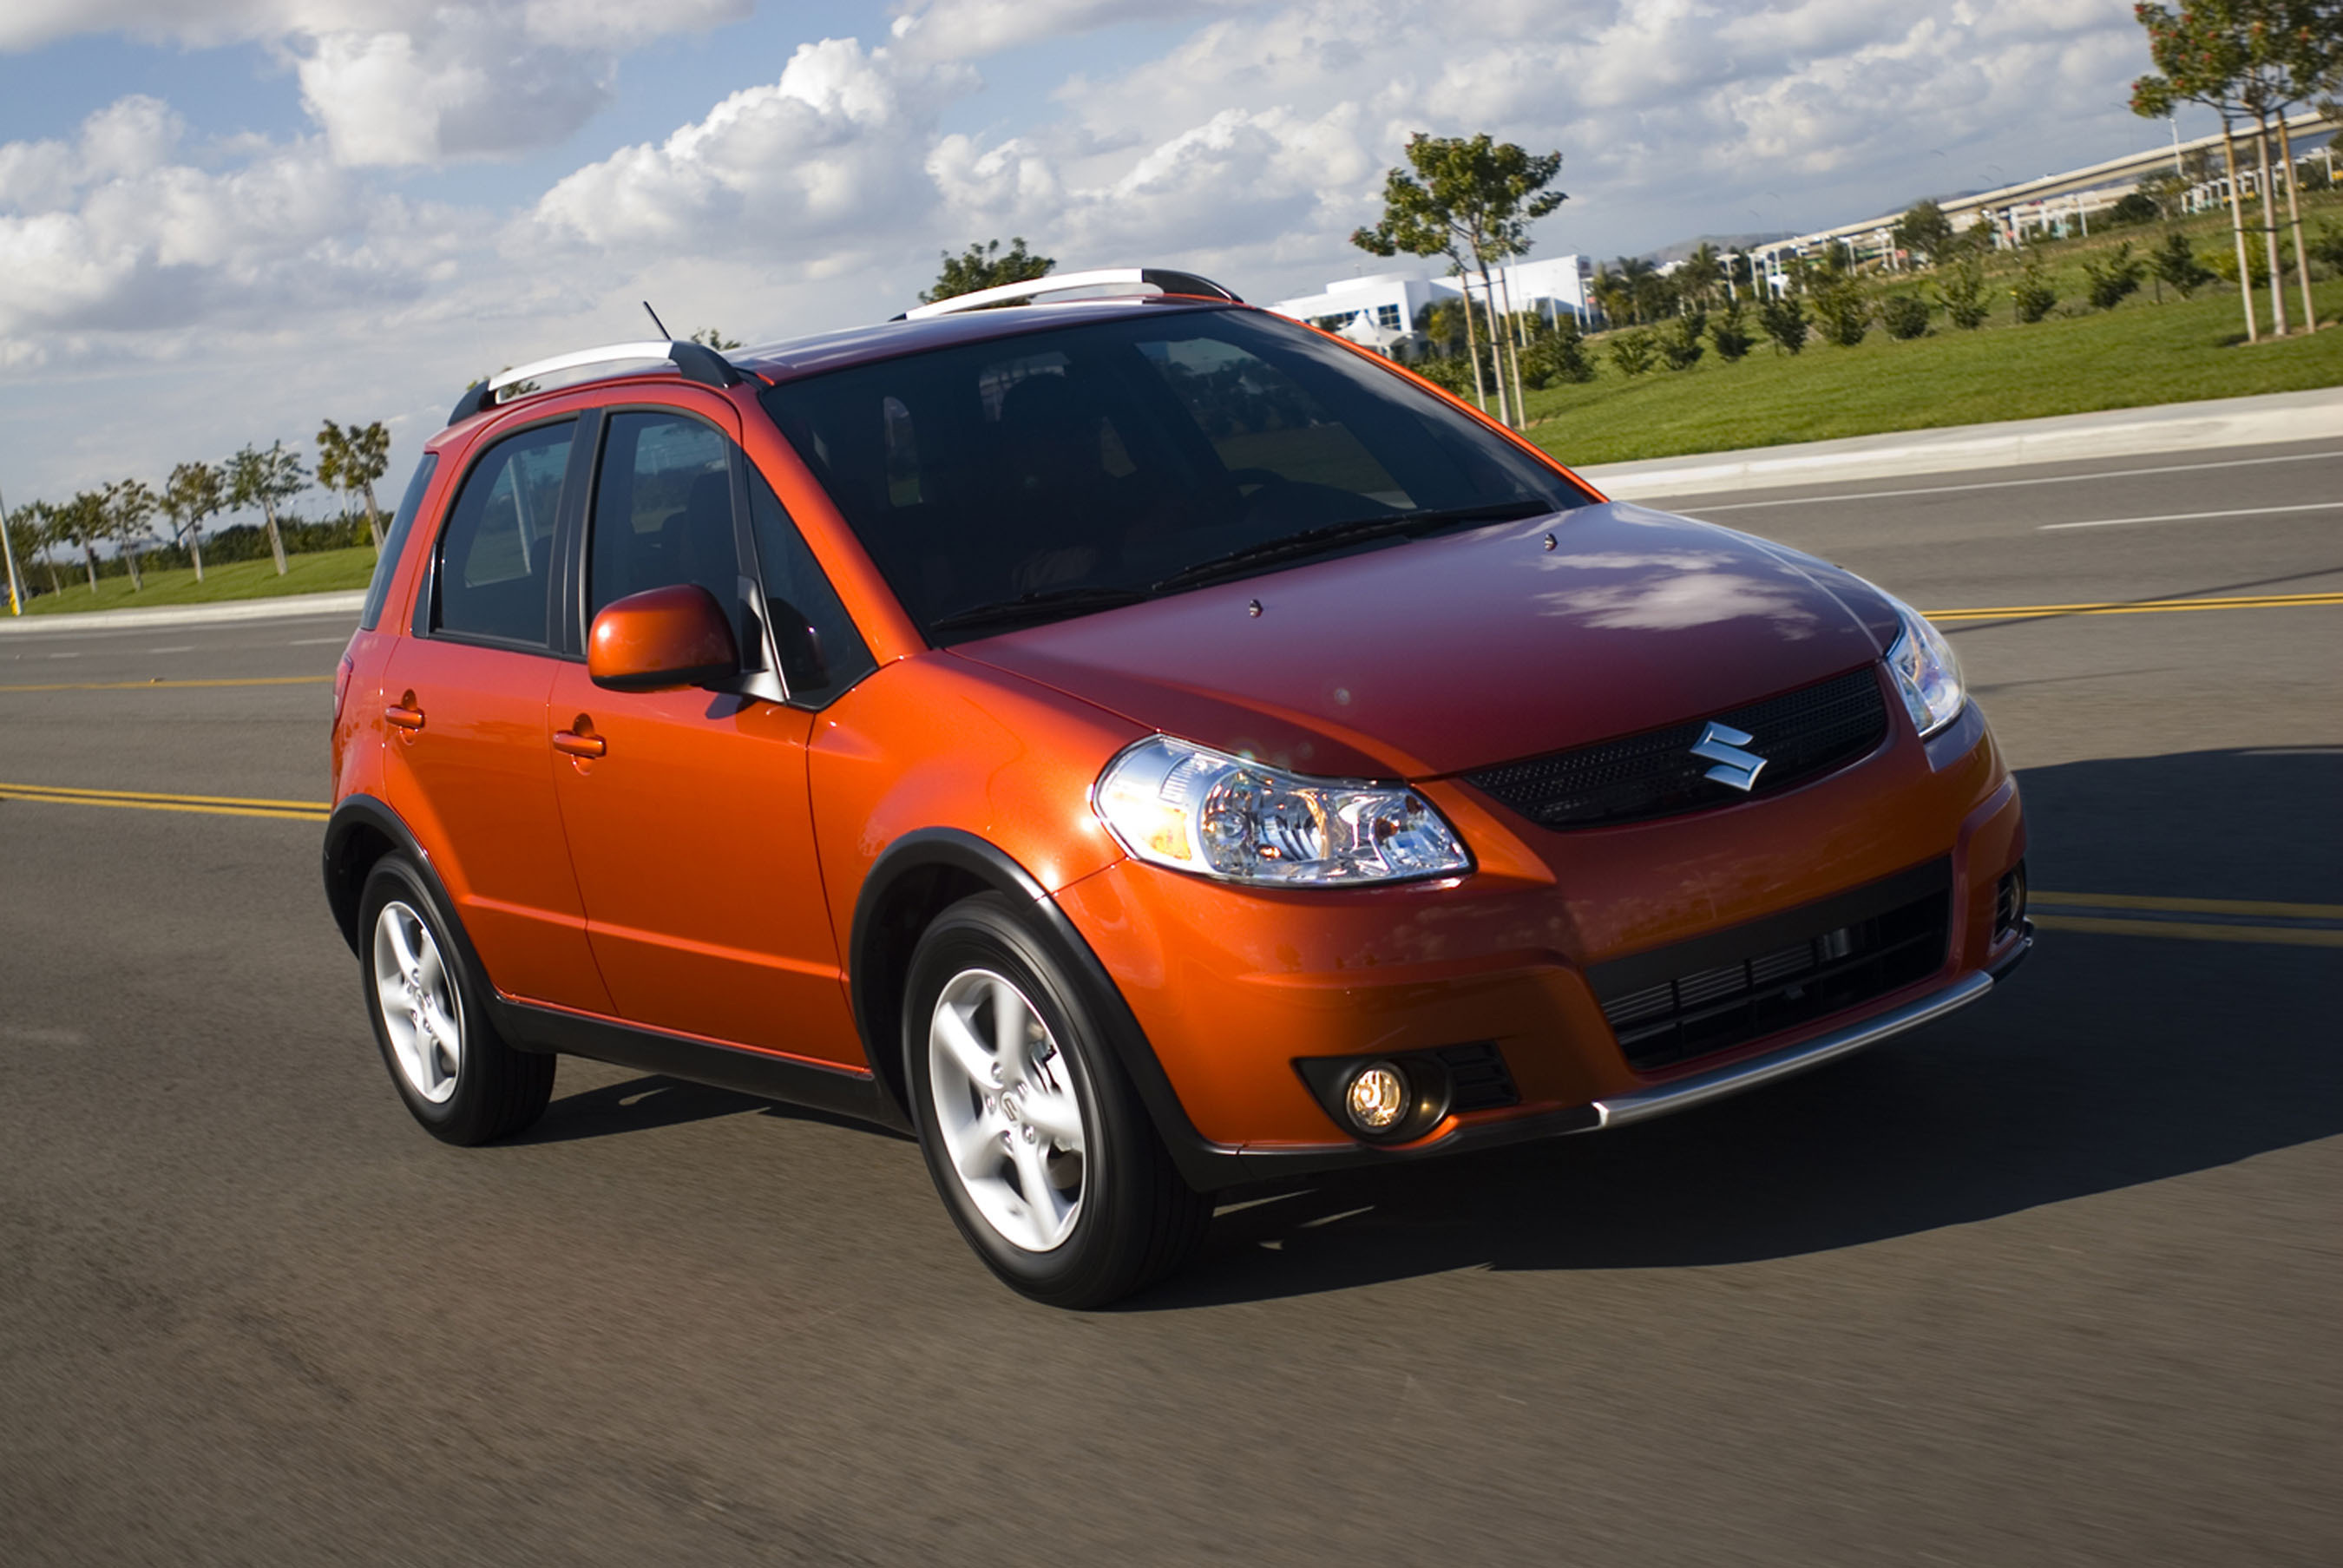 Suzuki Sx4 2006 Review Amazing Pictures And Images Look At The Car 2007 Reno Wiring Diagram Other Photos To